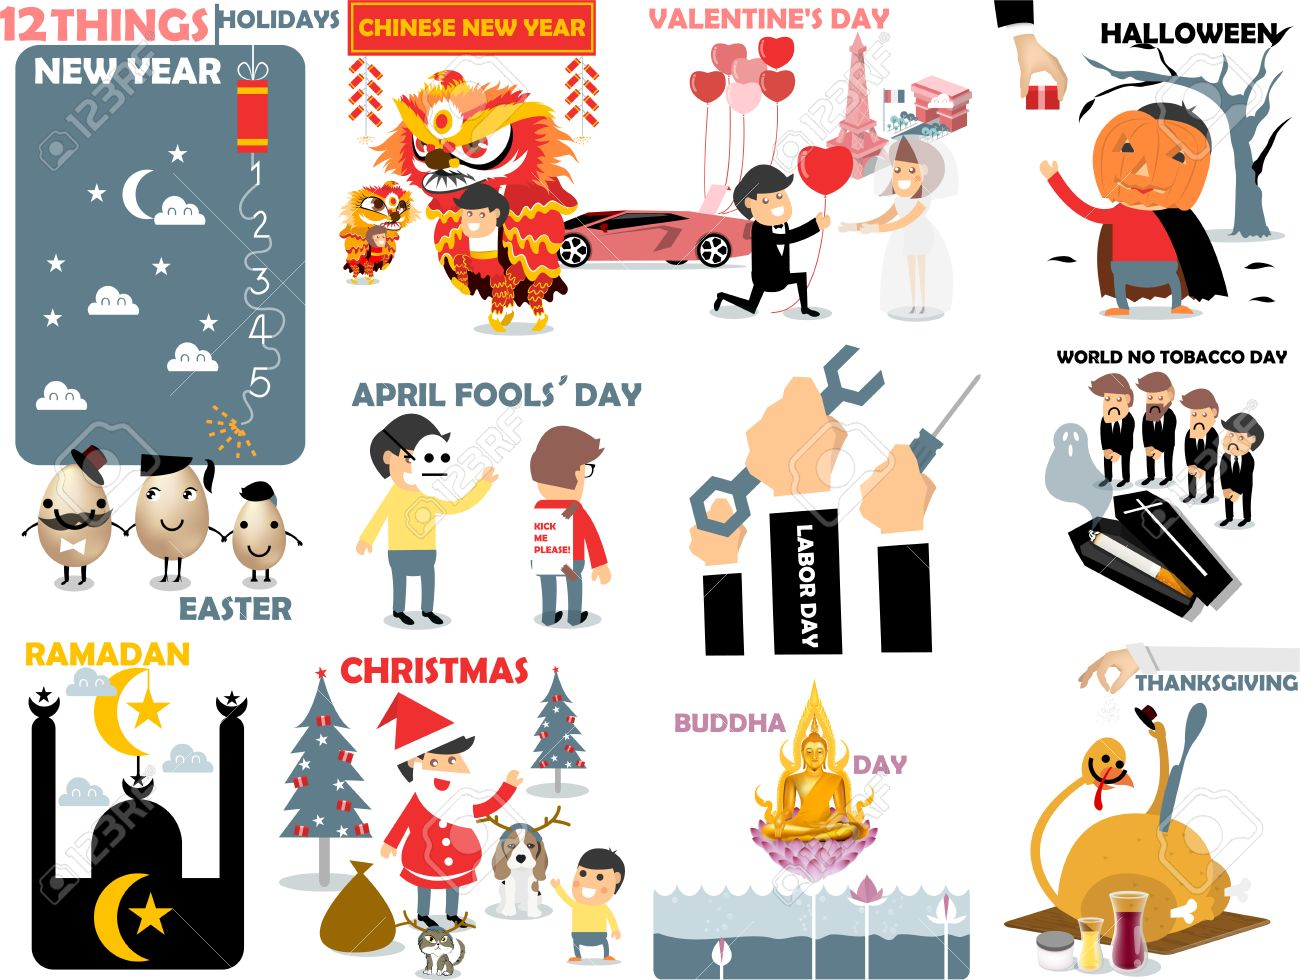 Halloween Thanksgiving Christmas Clipart.Beautiful Graphic Of 12 International Holidays New Year Chinese